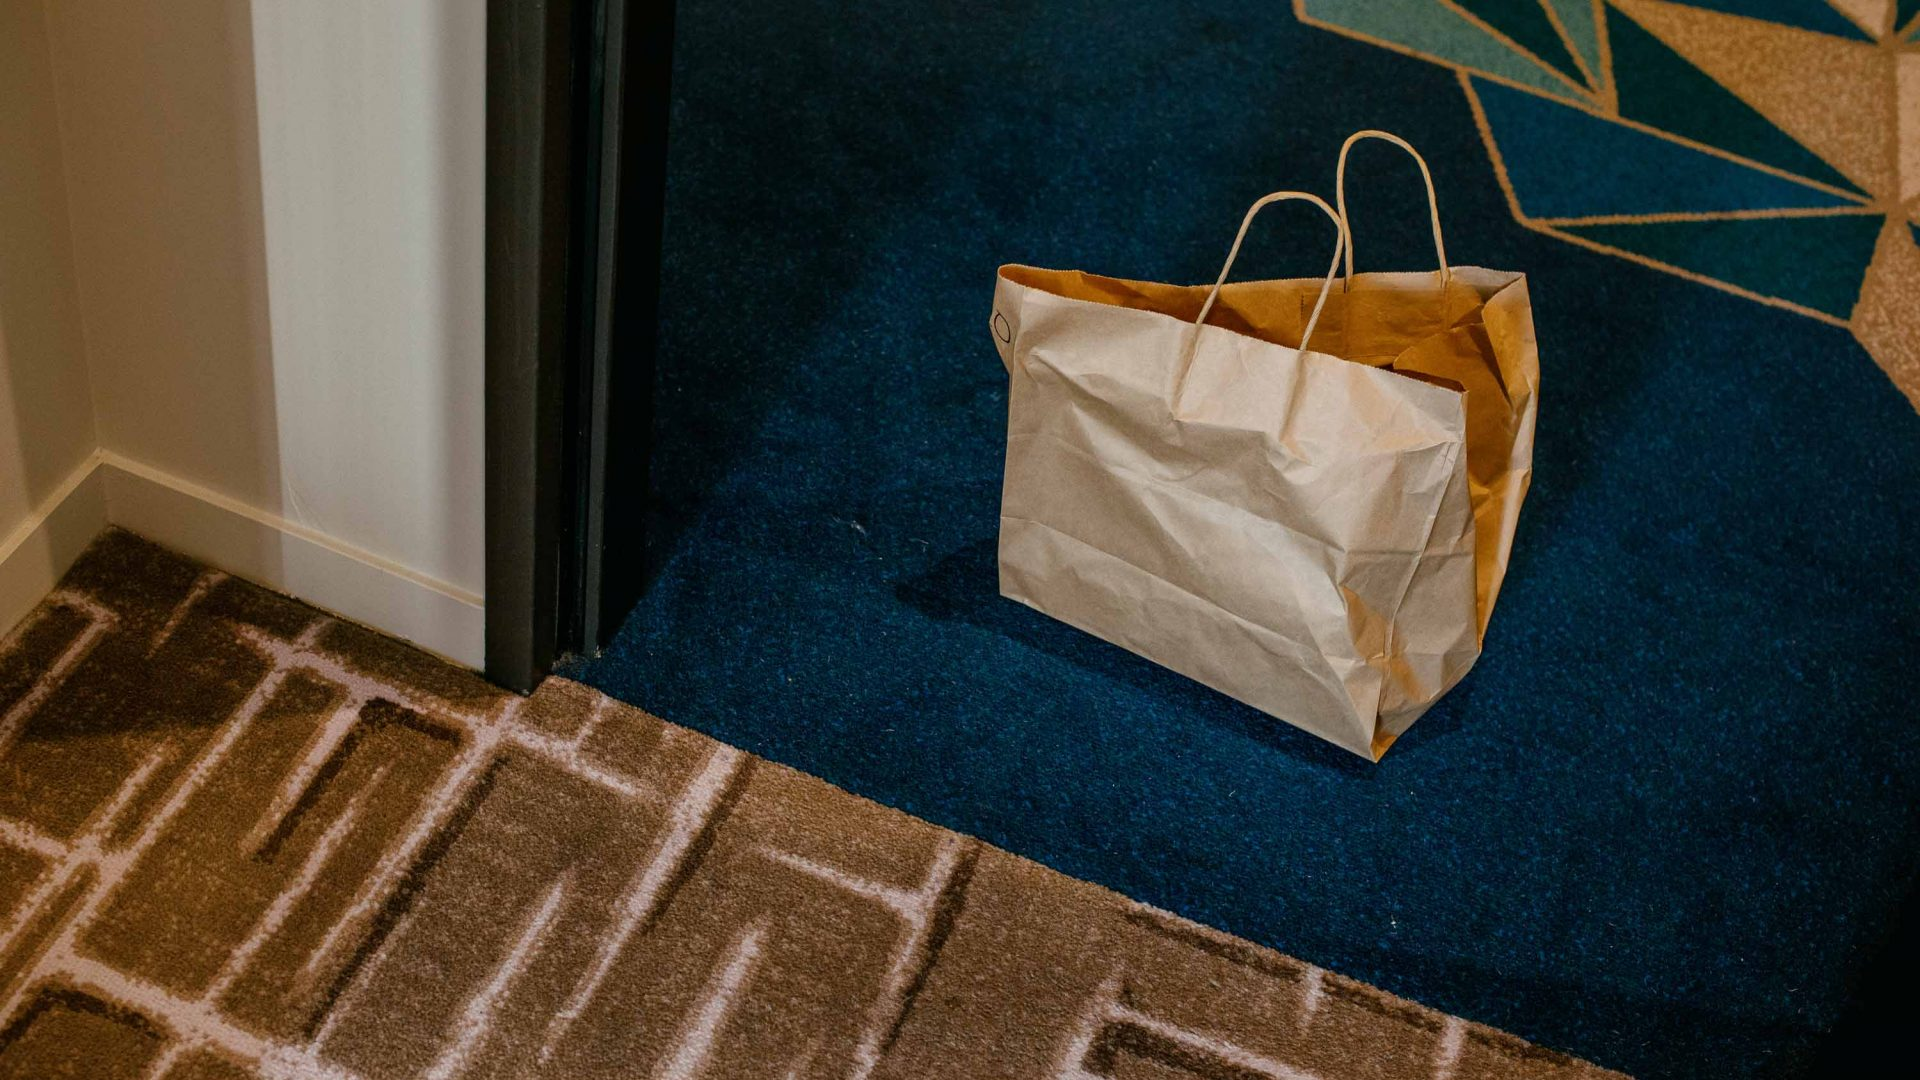 A paper bag at the door of the hotel room.